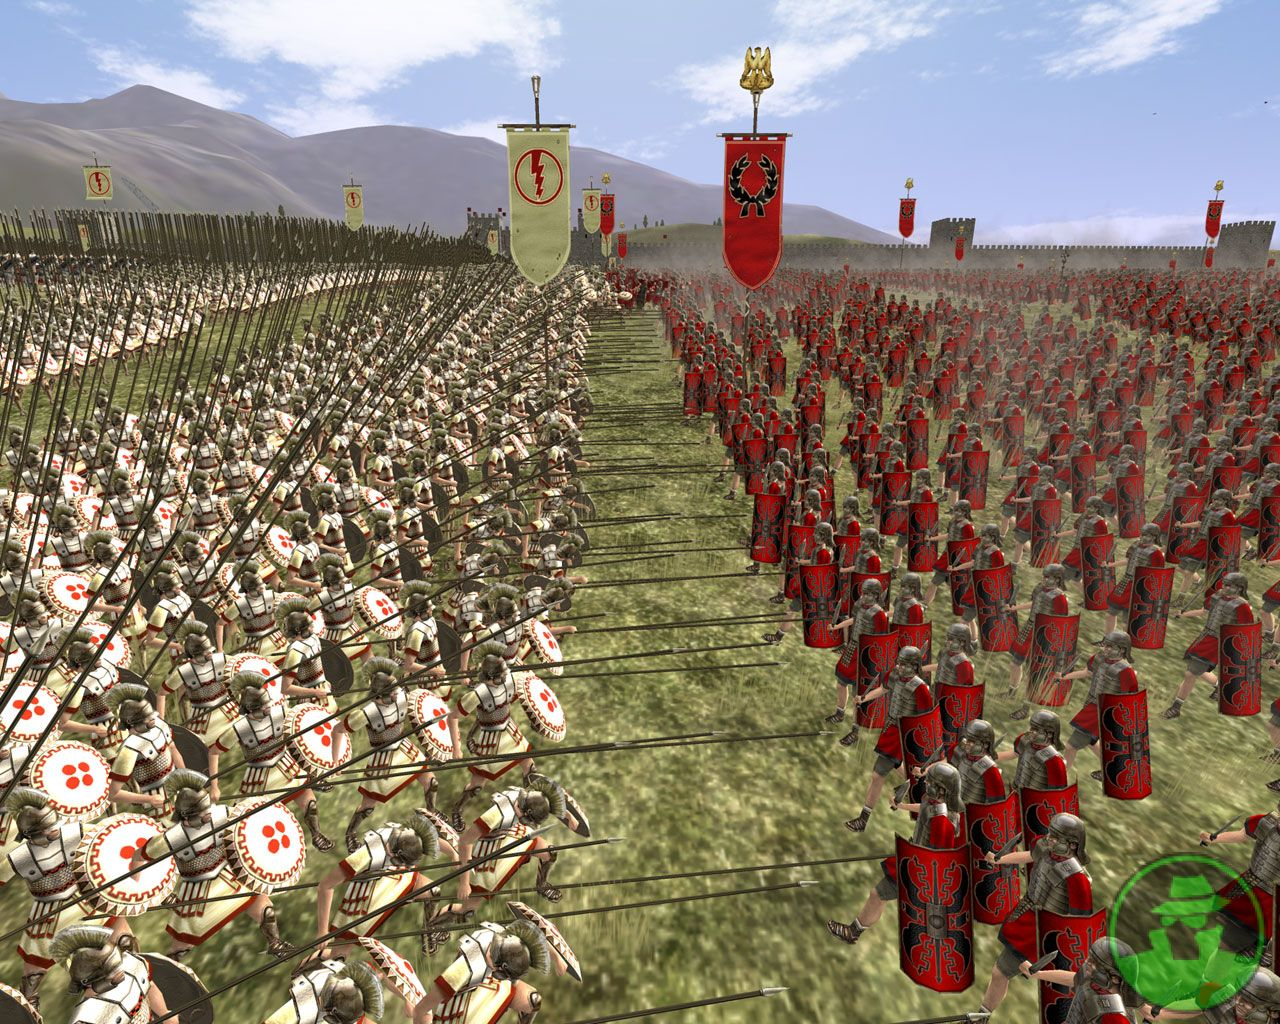 https://i0.wp.com/pcmedia.gamespy.com/pc/image/article/541/541929/rome-total-war-20040824044758216.jpg